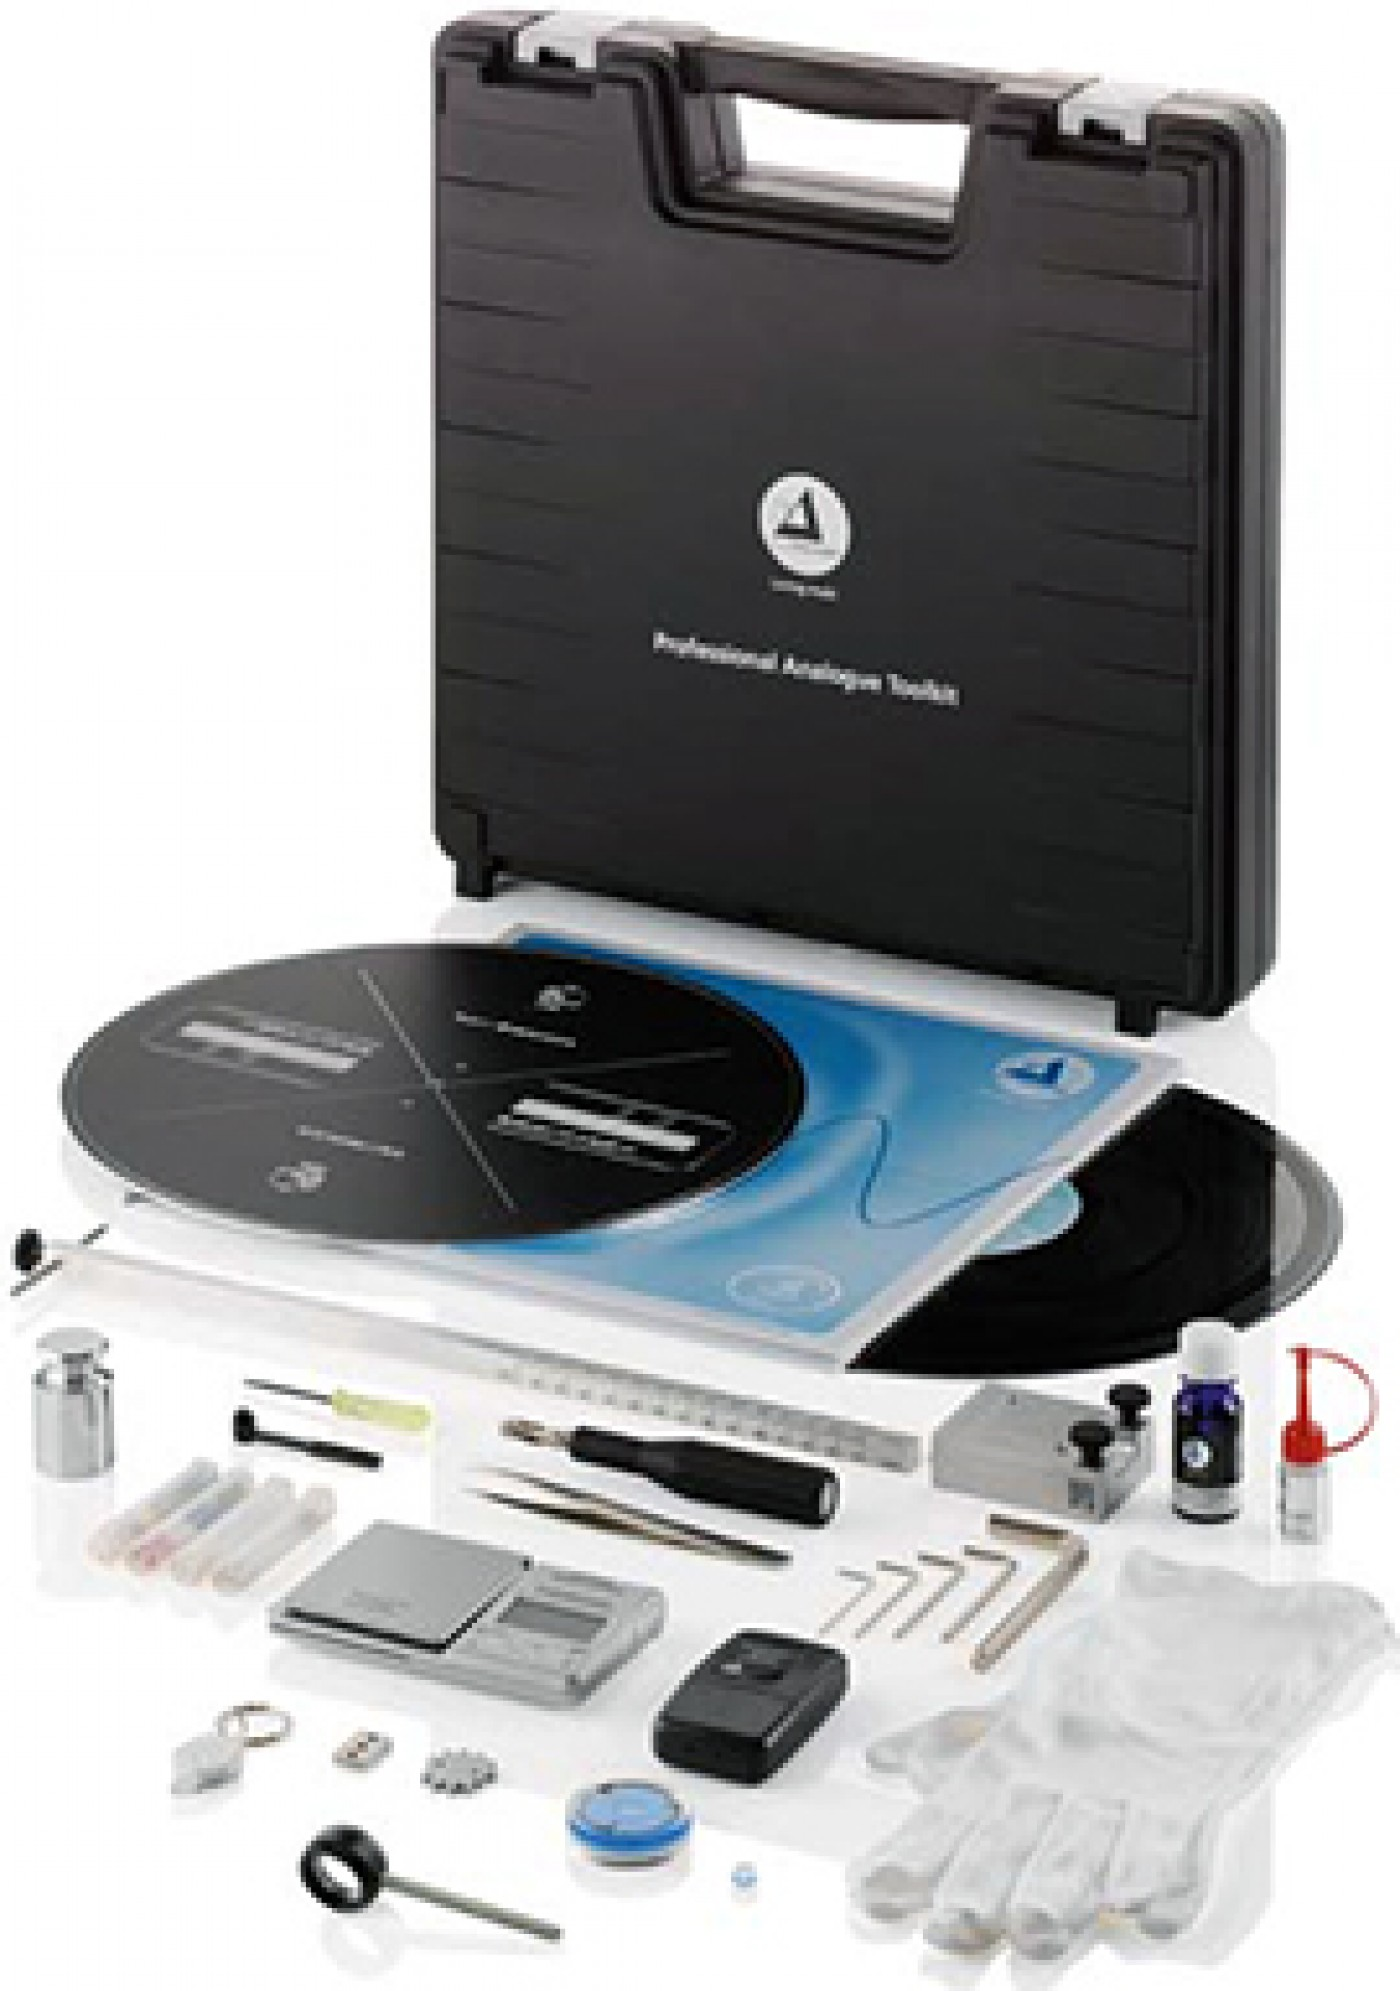 sc 1 st  Analogue Seduction & Clearaudio Professional Turntable Set Up Kit